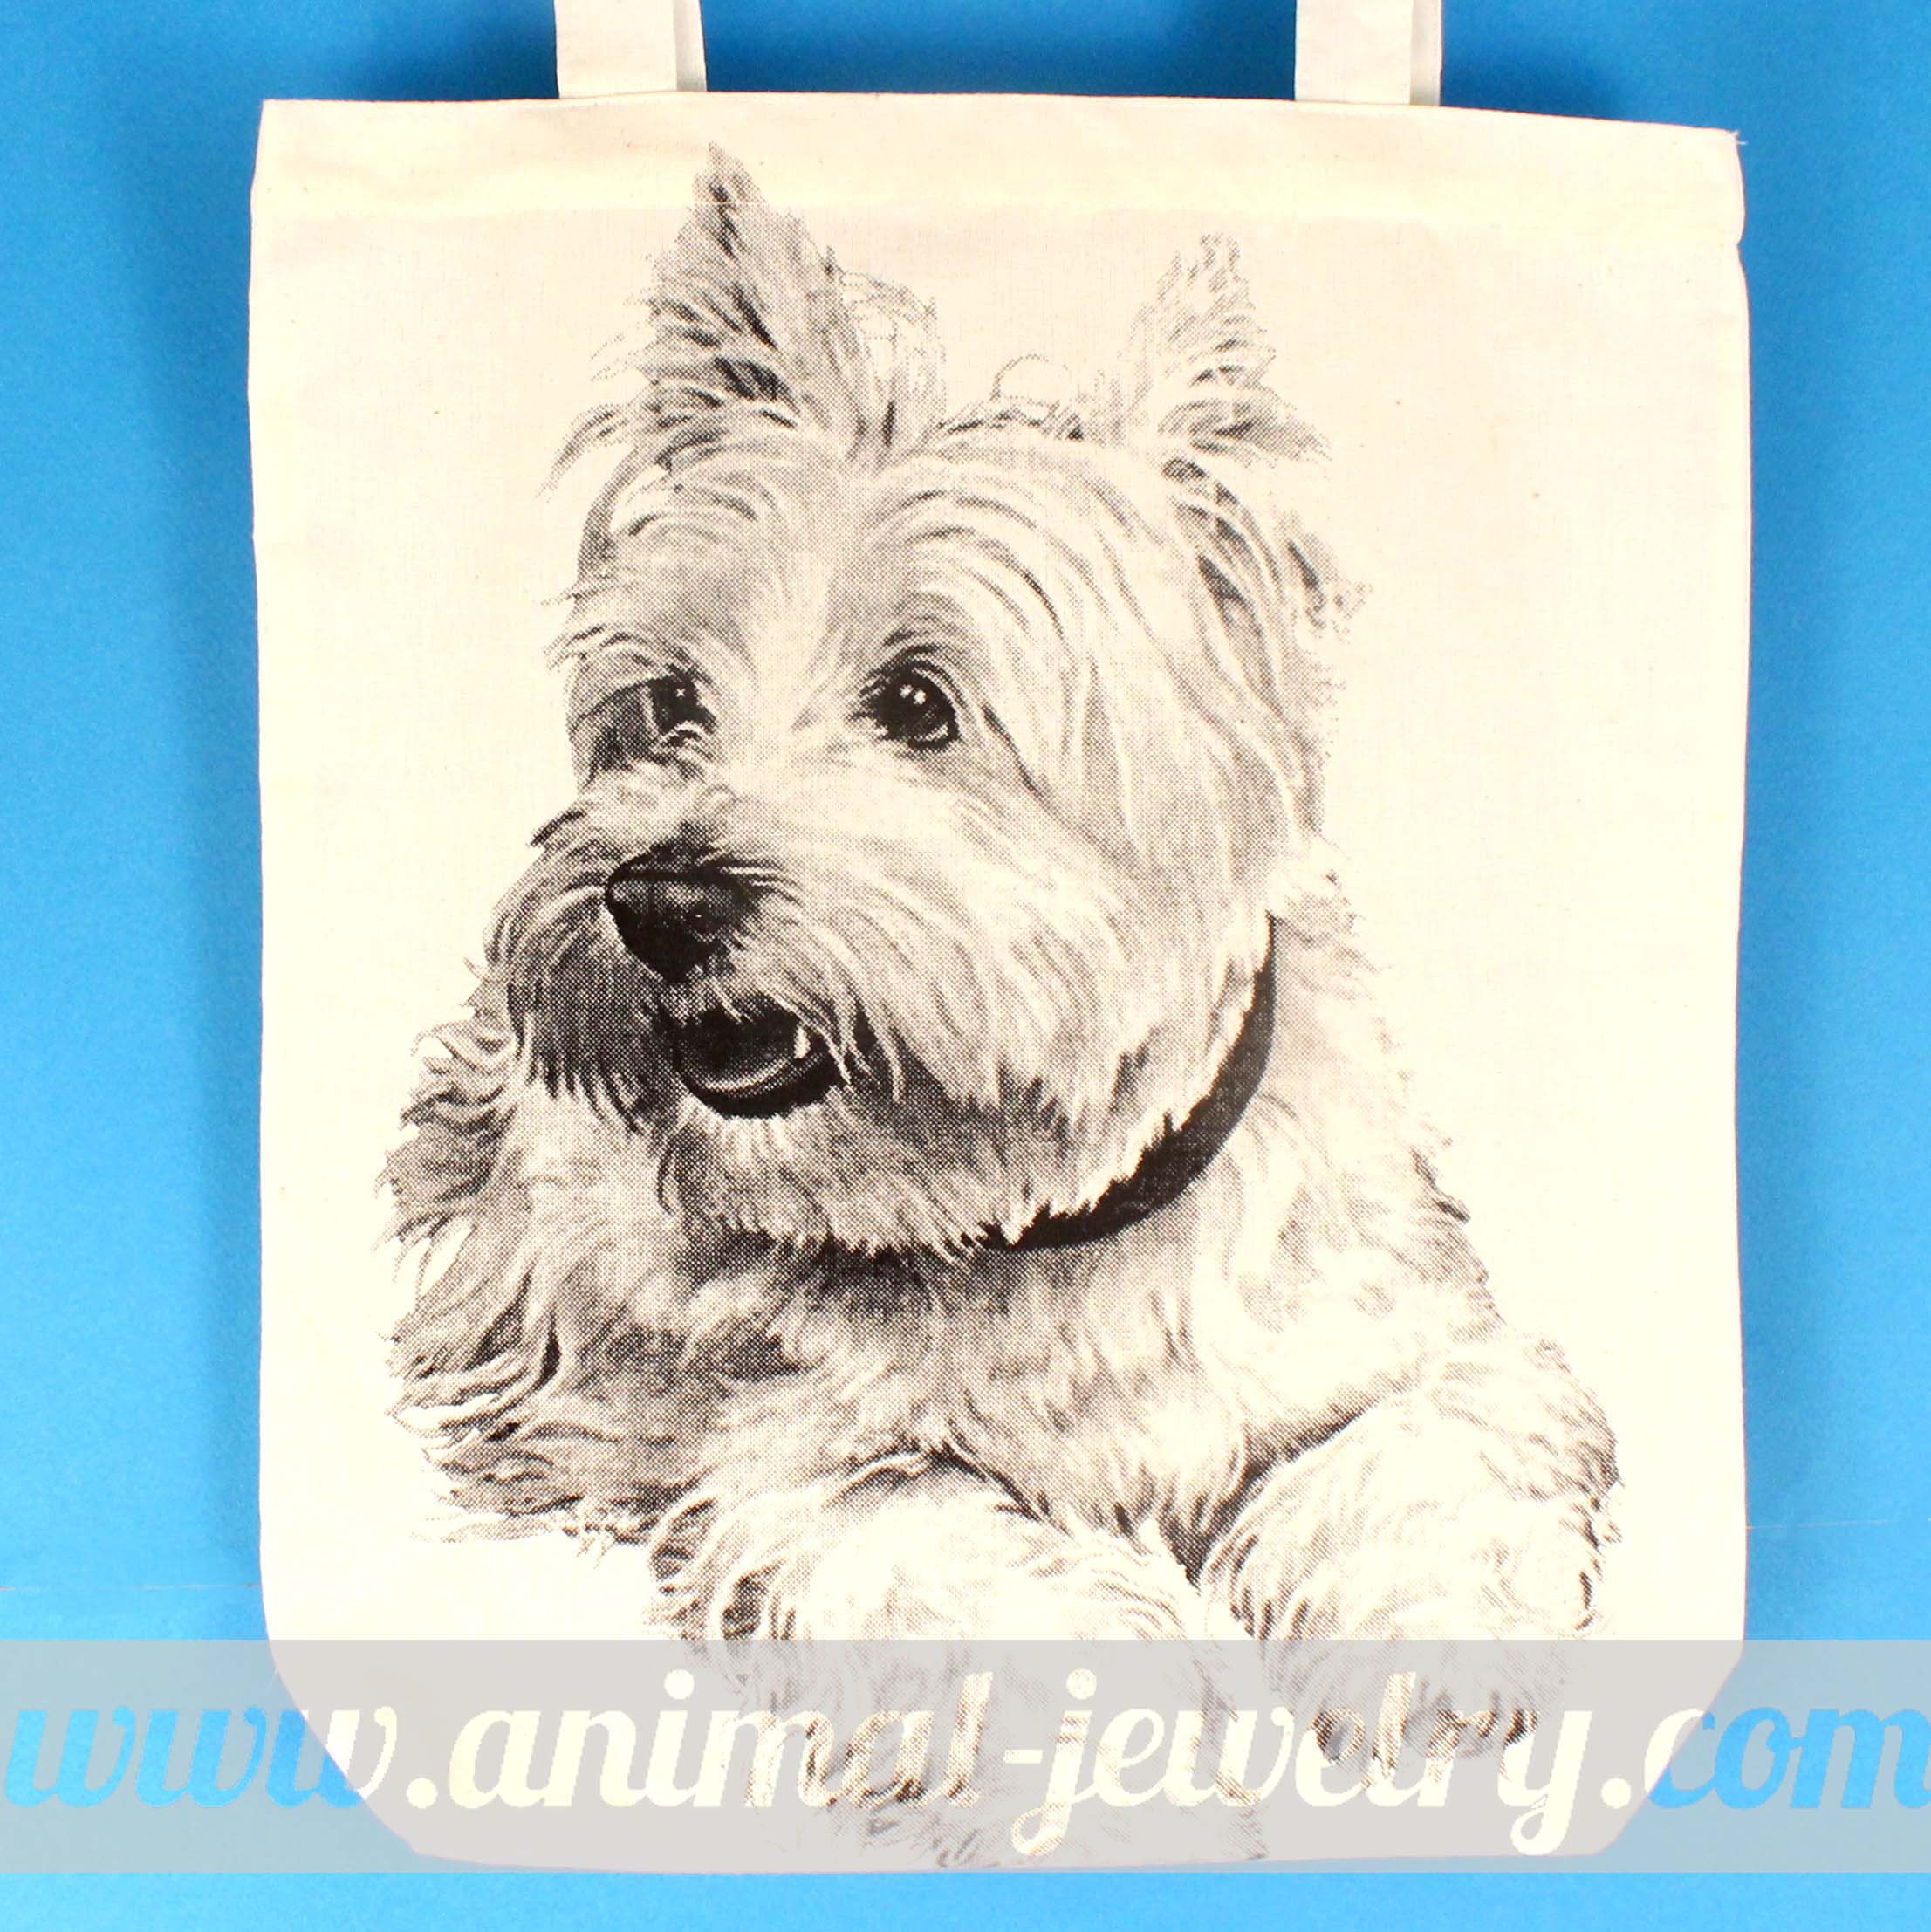 white-terrier-westie-puppy-dog-animal-print-tote-bag-100-natural-cotton